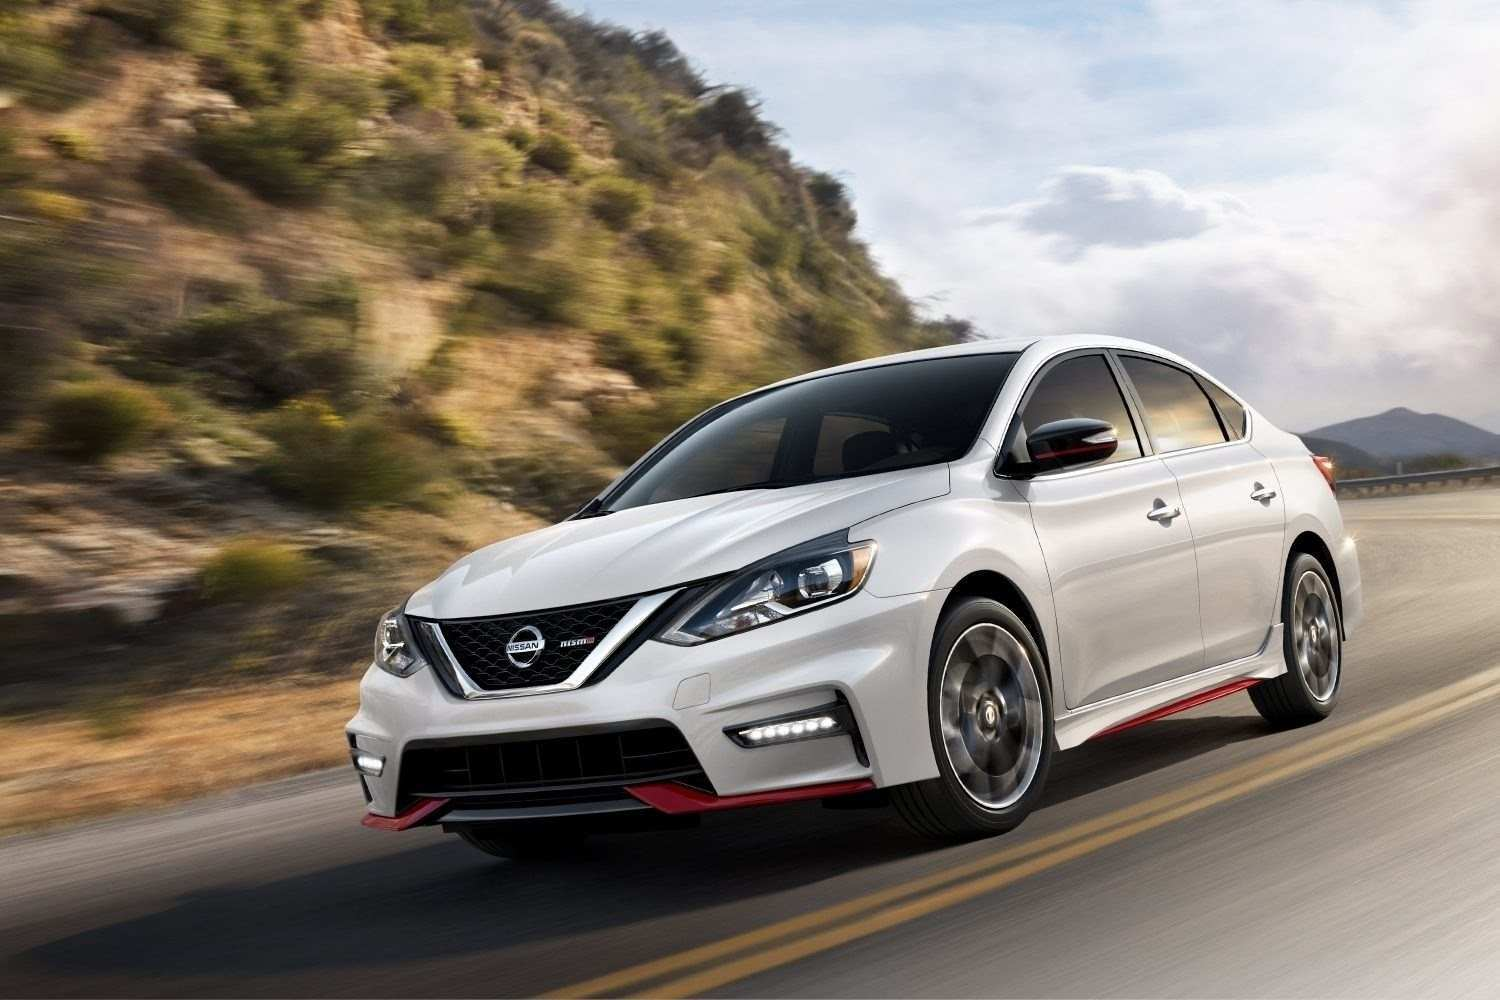 32 A 2020 Nissan Lannia Price And Review